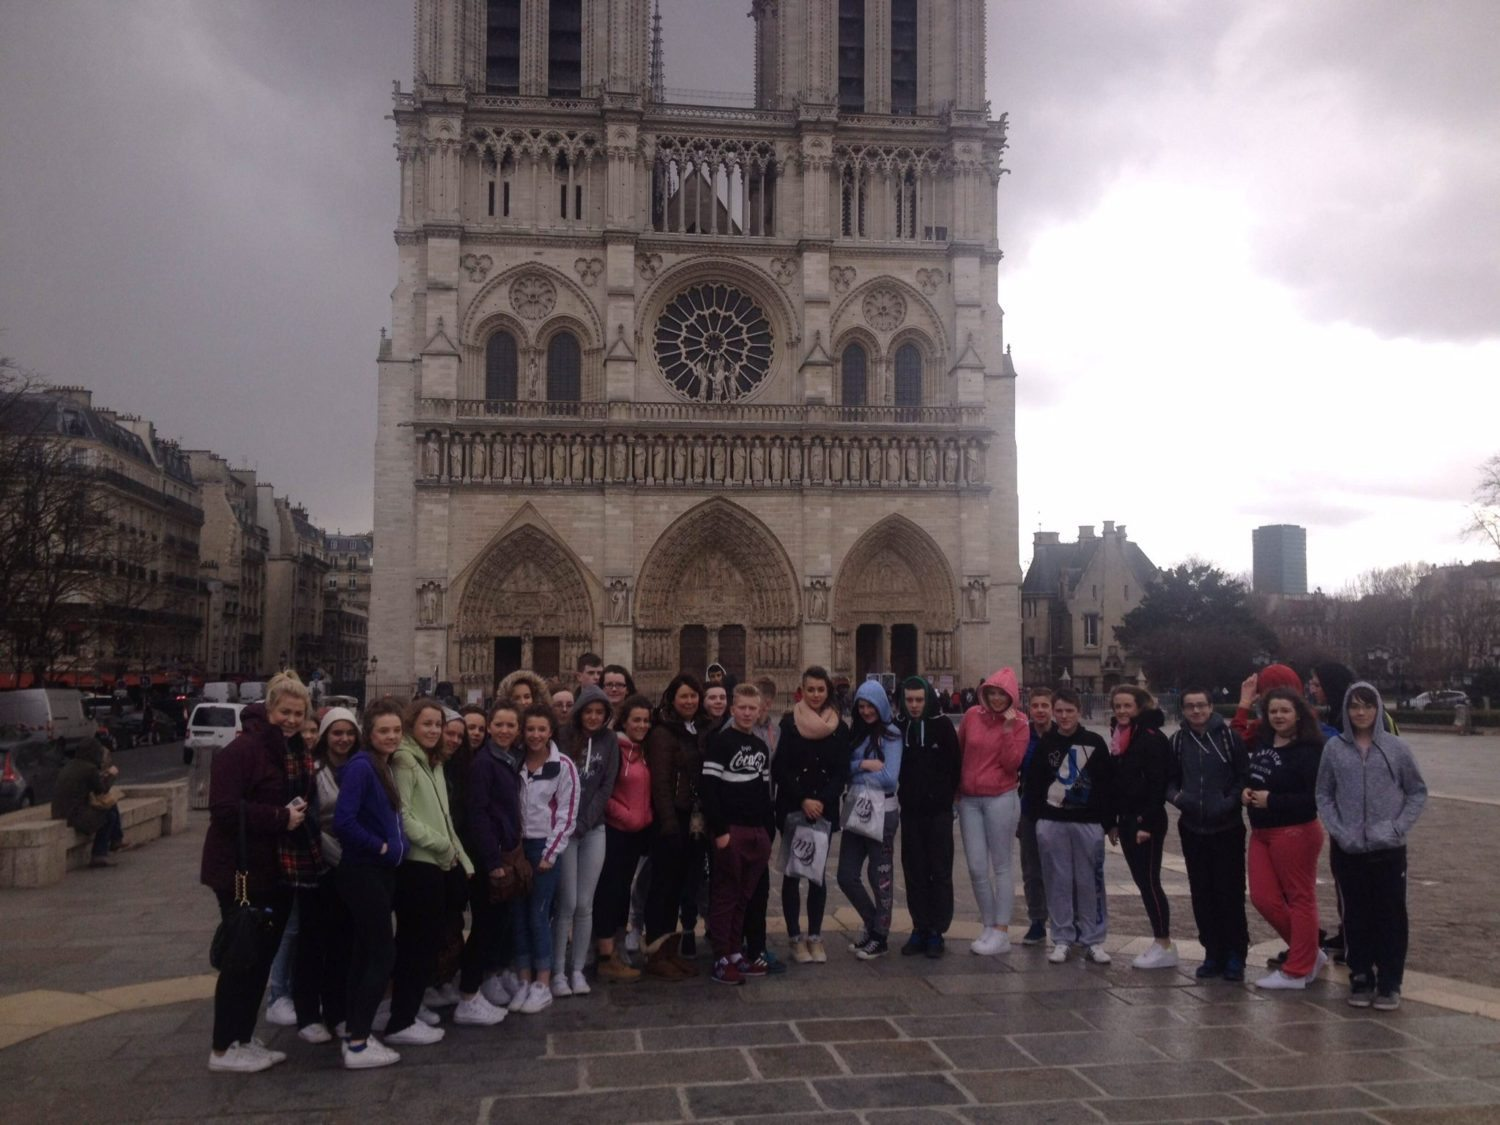 The Desmond College French Tour Group visits the Famous Notre Dame in Paris